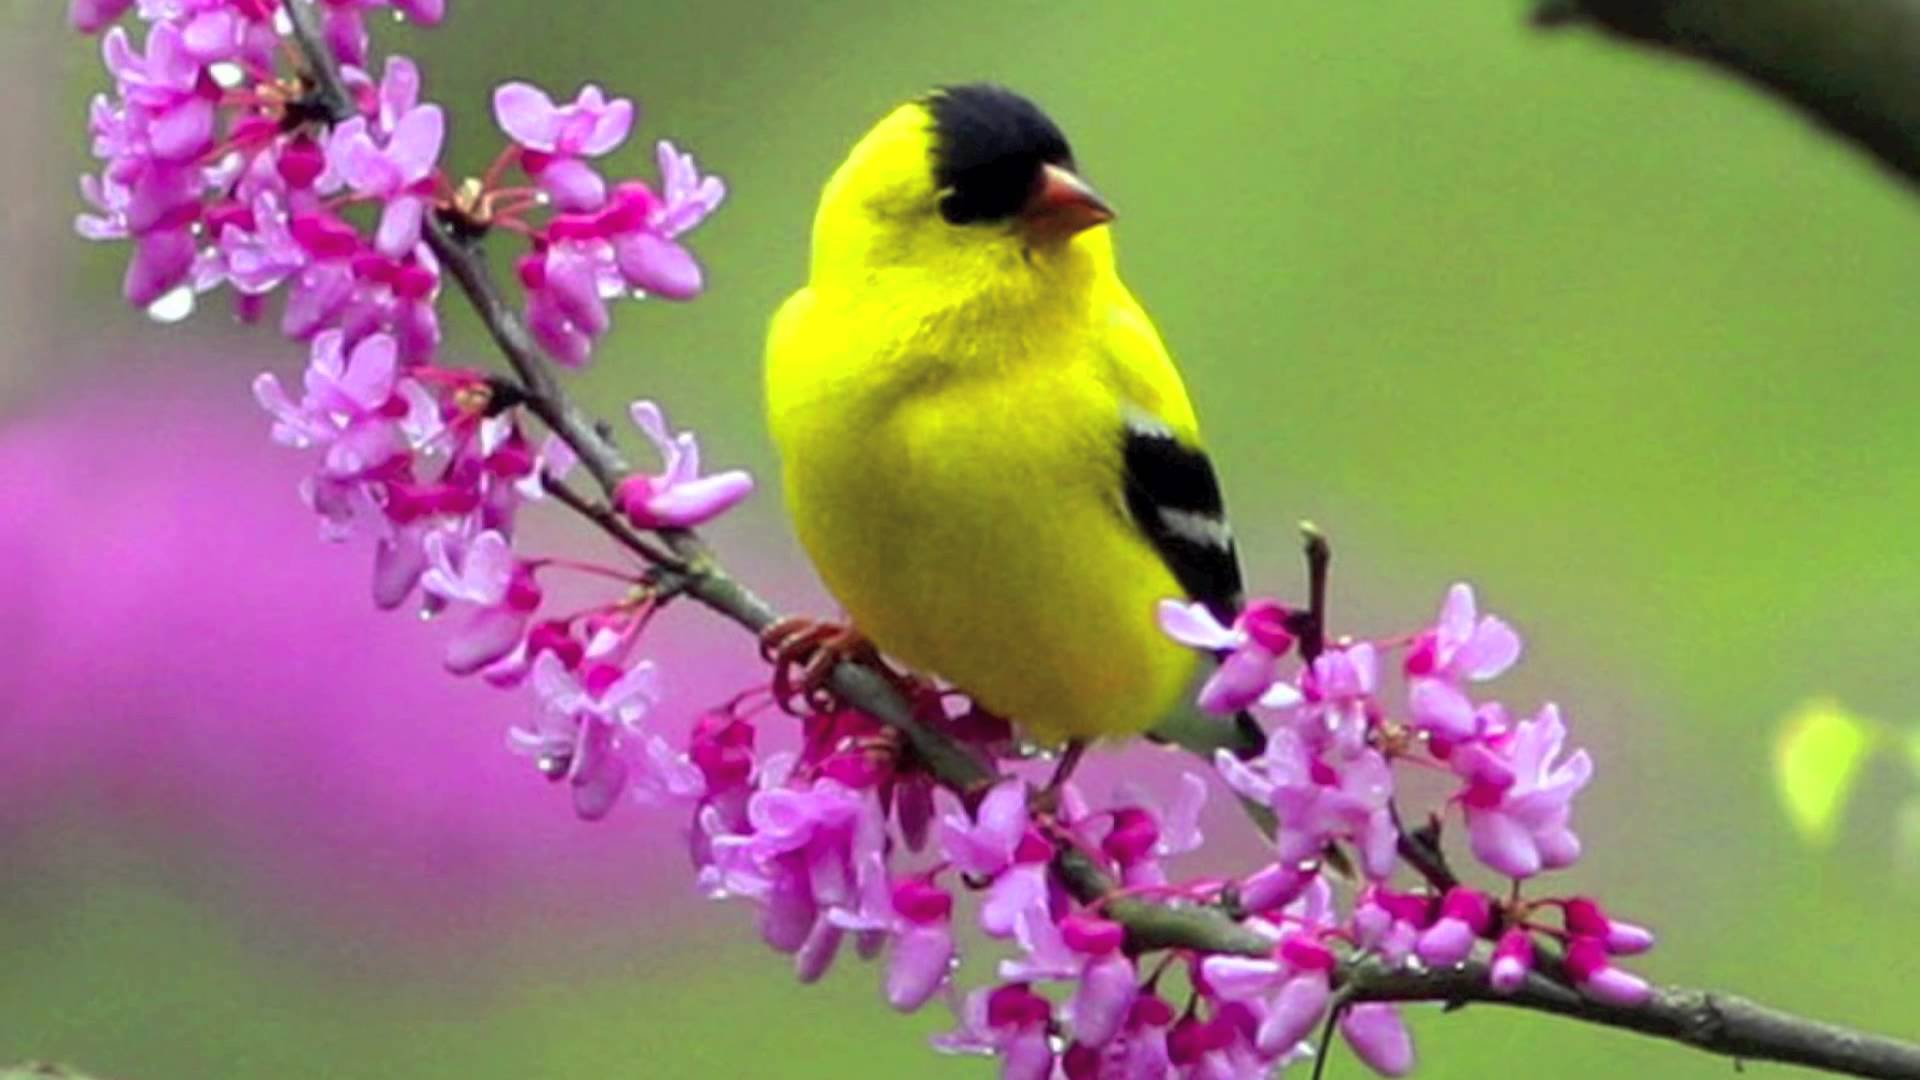 Wallpaper With Birds wallpaper birds and flowers - wallpapersafari